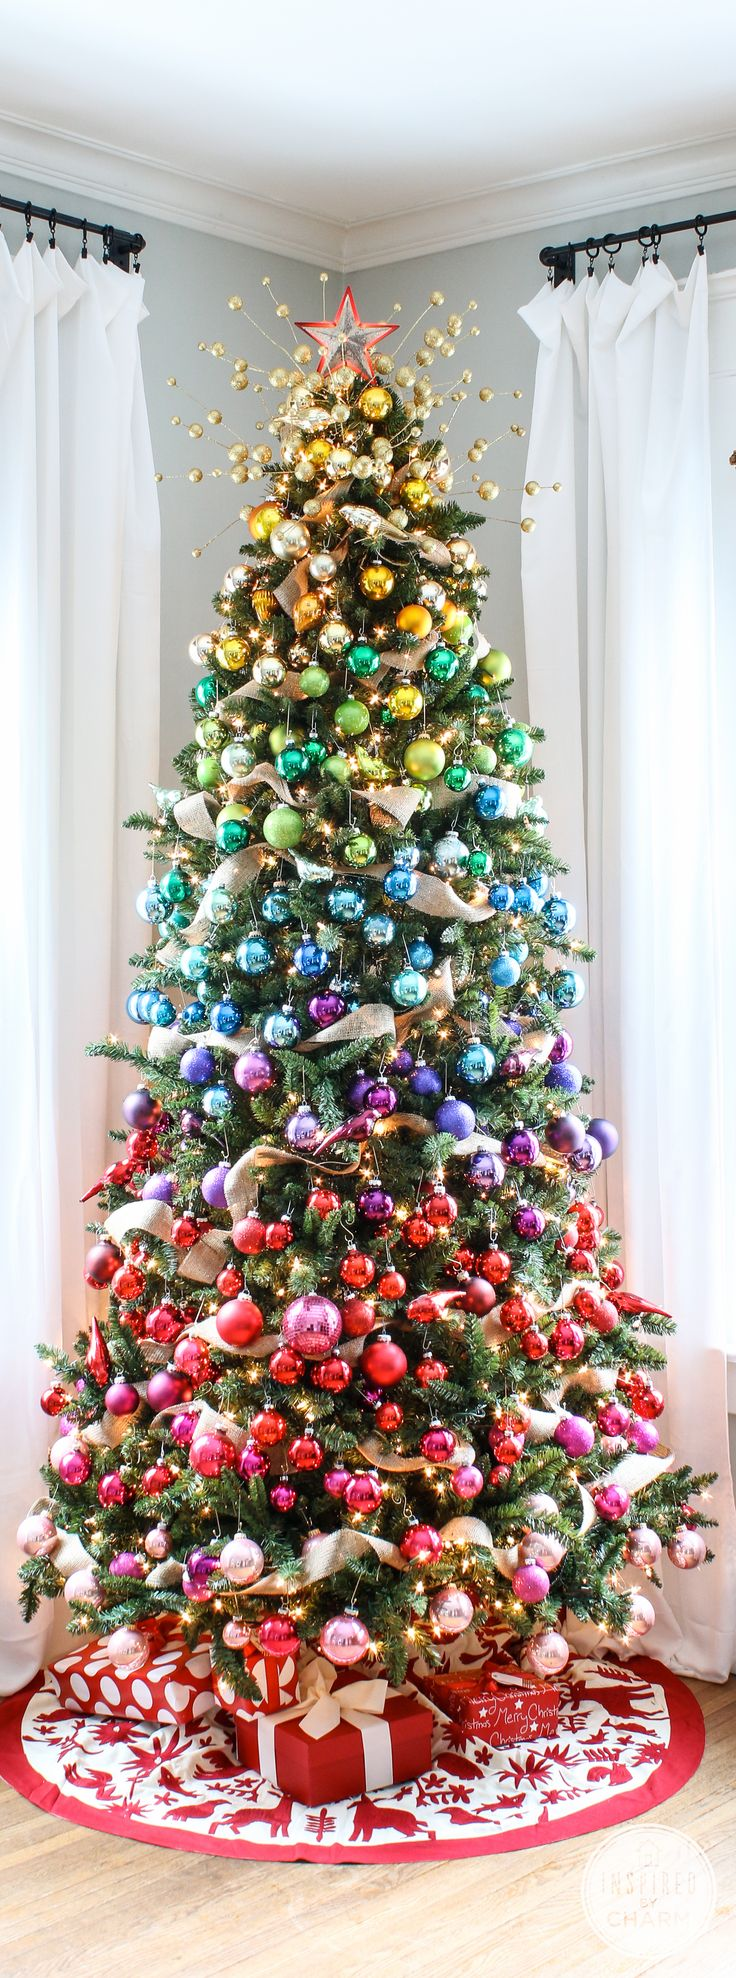 the most colorful christmas trees and decorations you have ever seen homesthetics 2 - Colorful Christmas Decorations